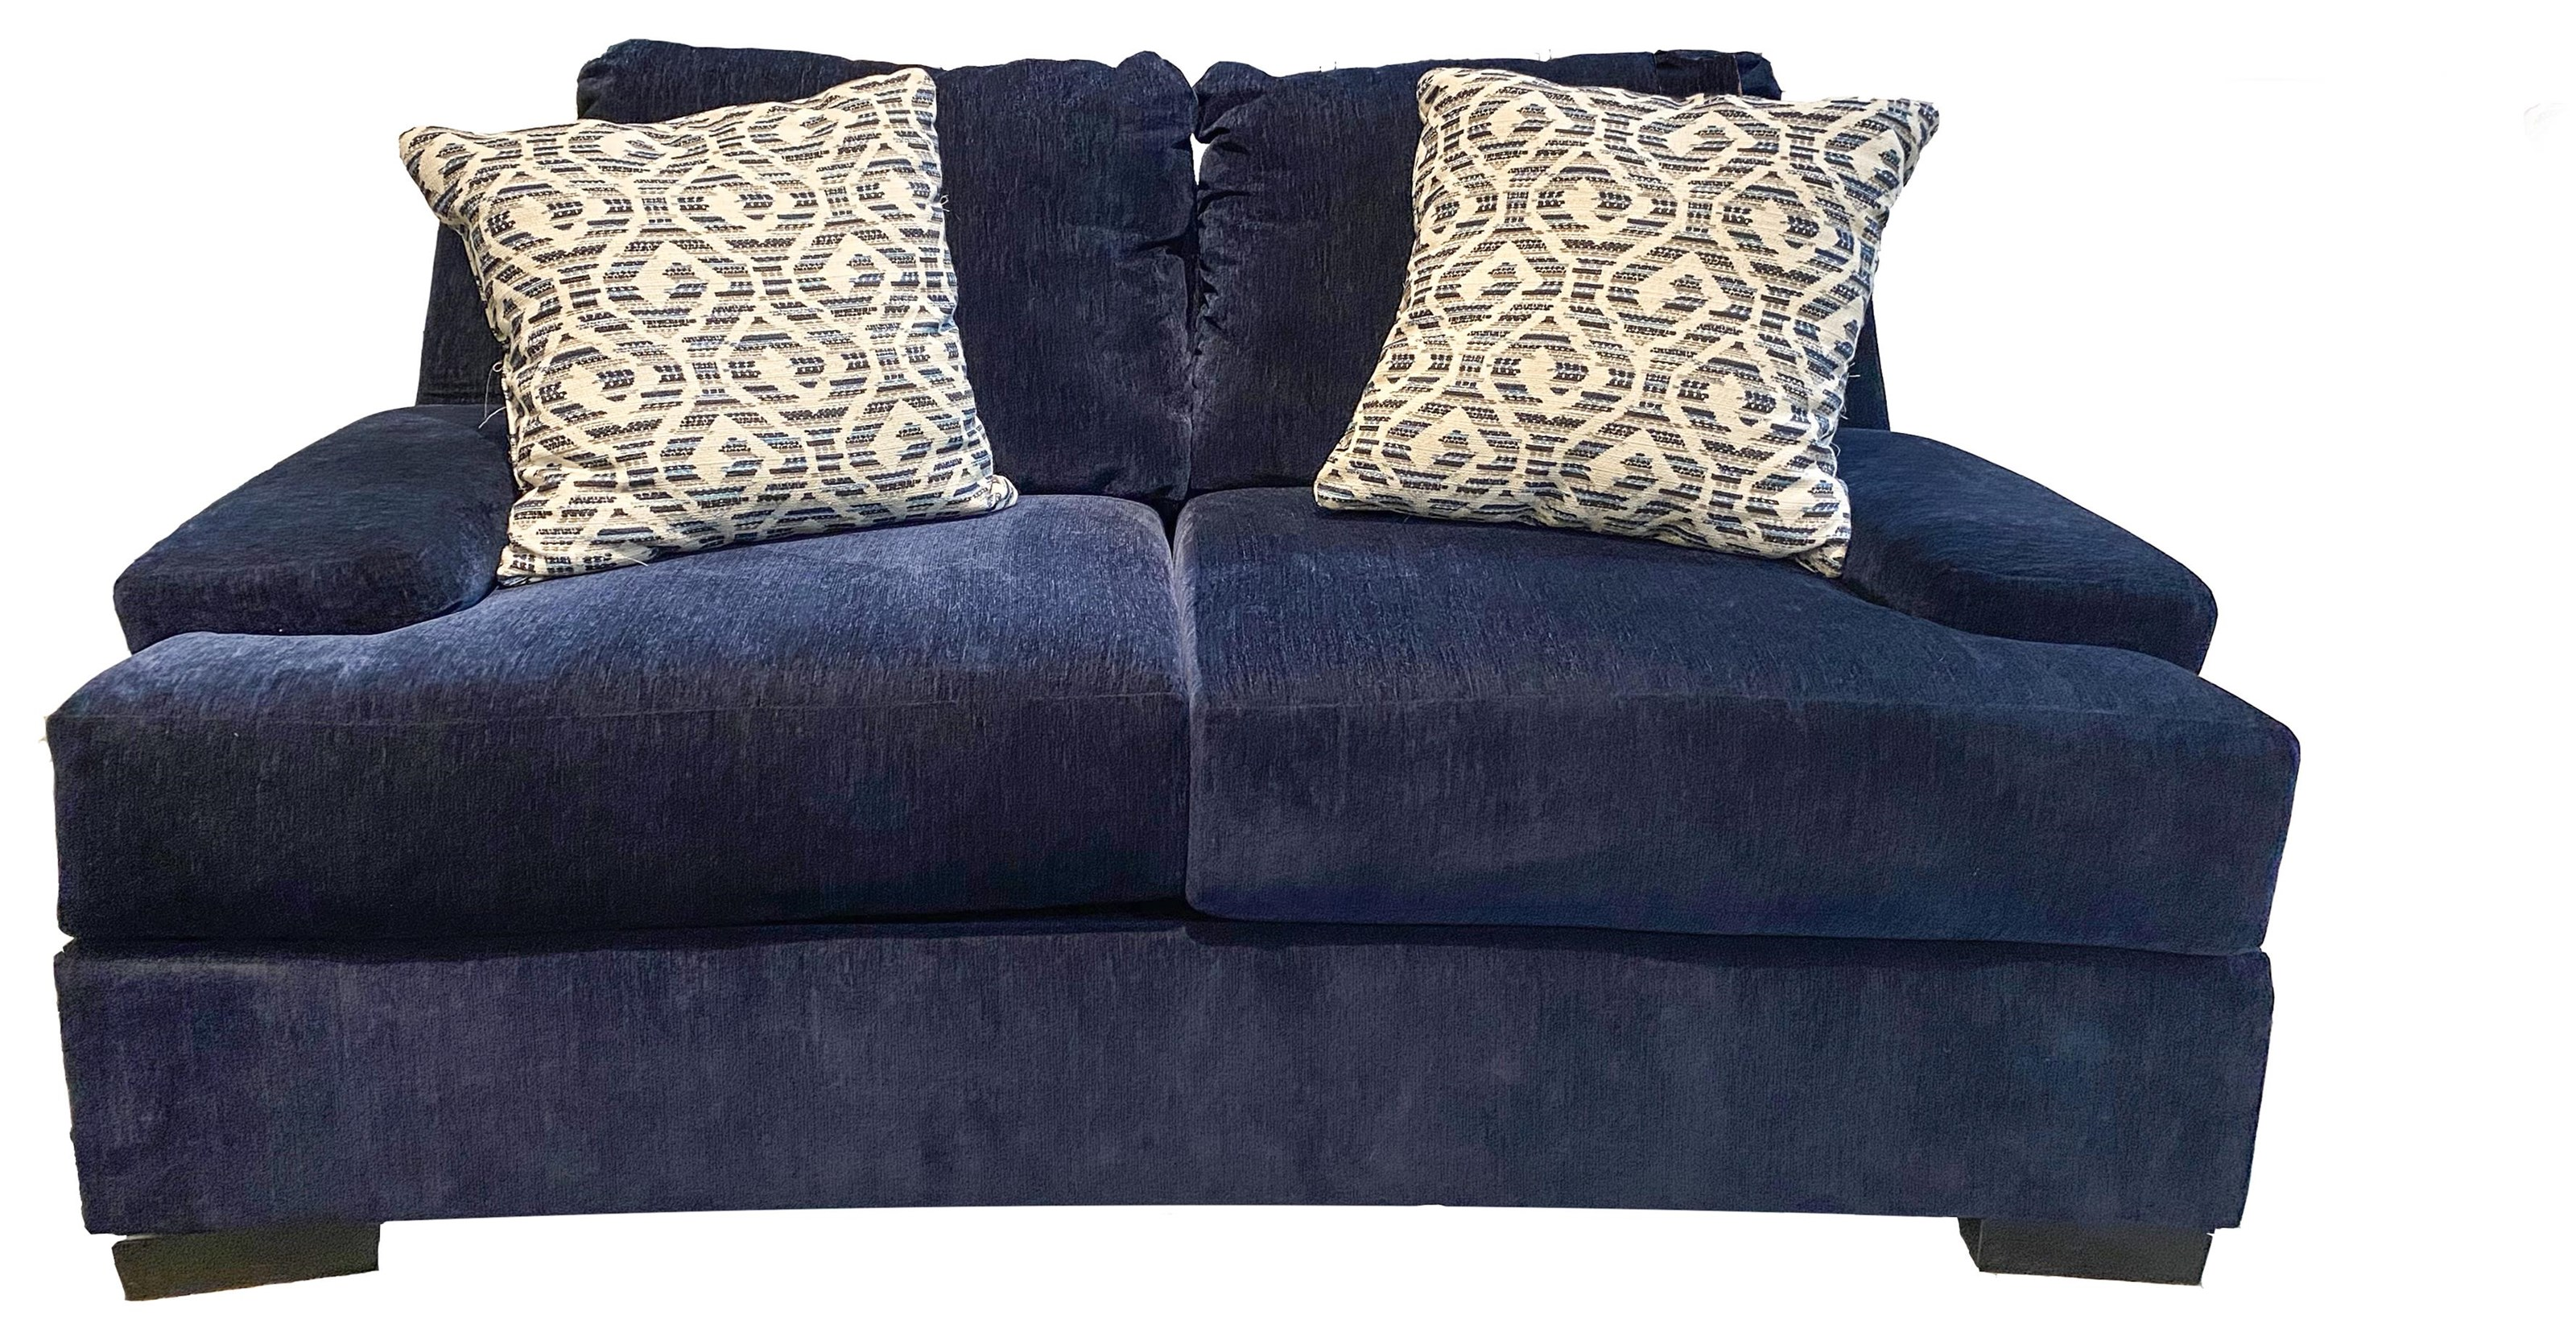 Hastings Pasha Admiral Loveseat by Michael Nicholas at Beck's Furniture